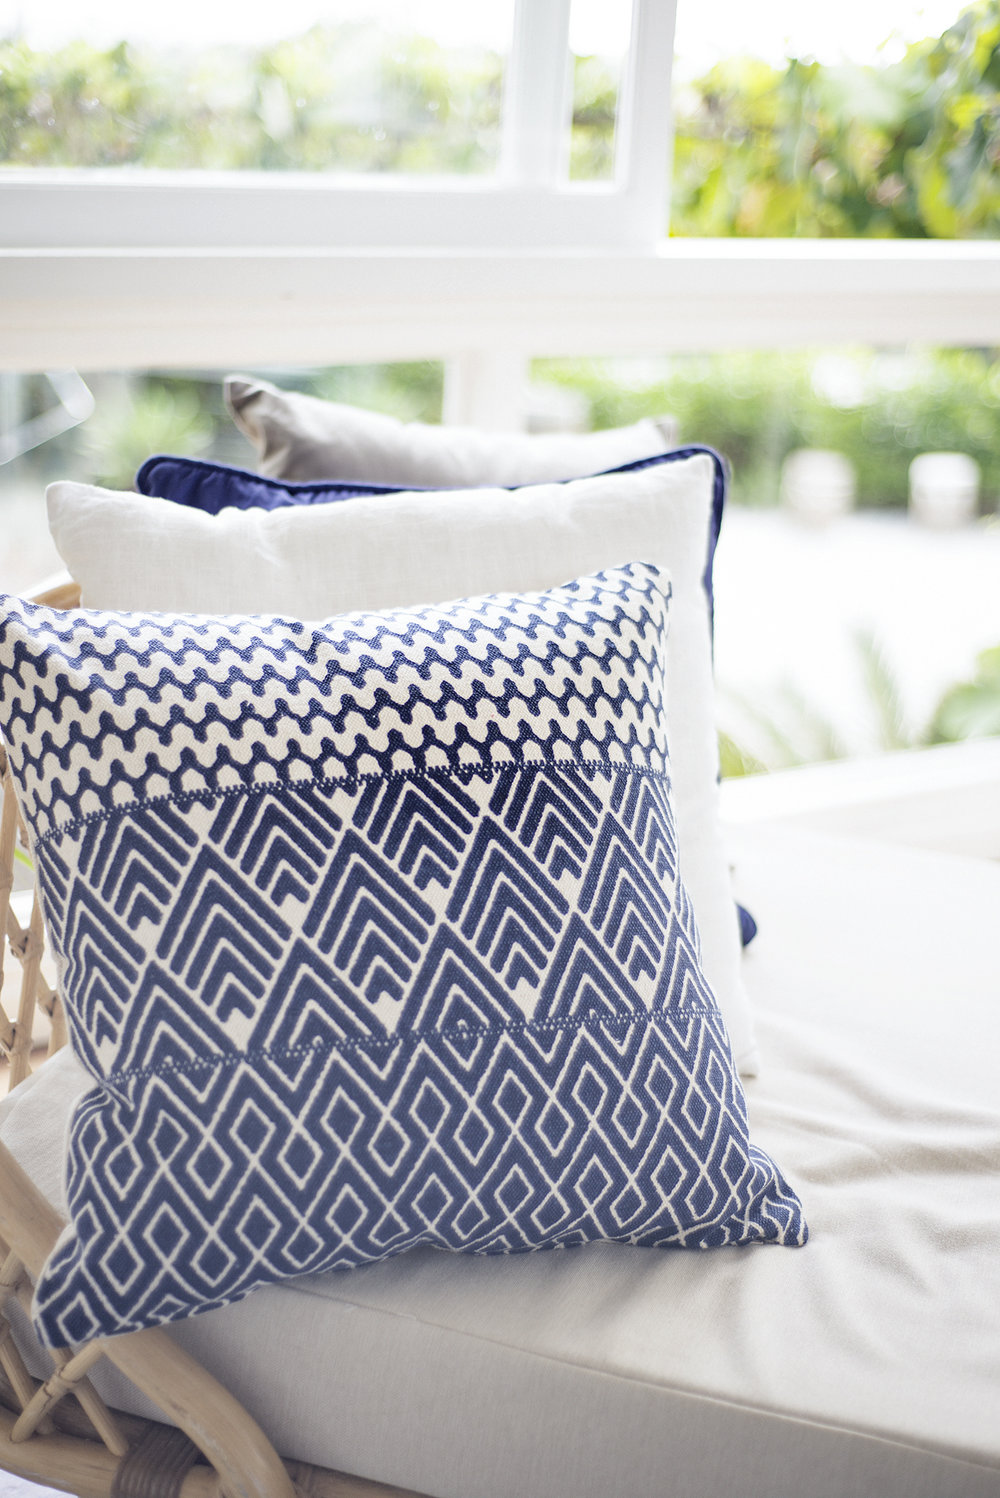 Pattern Cushion.jpg